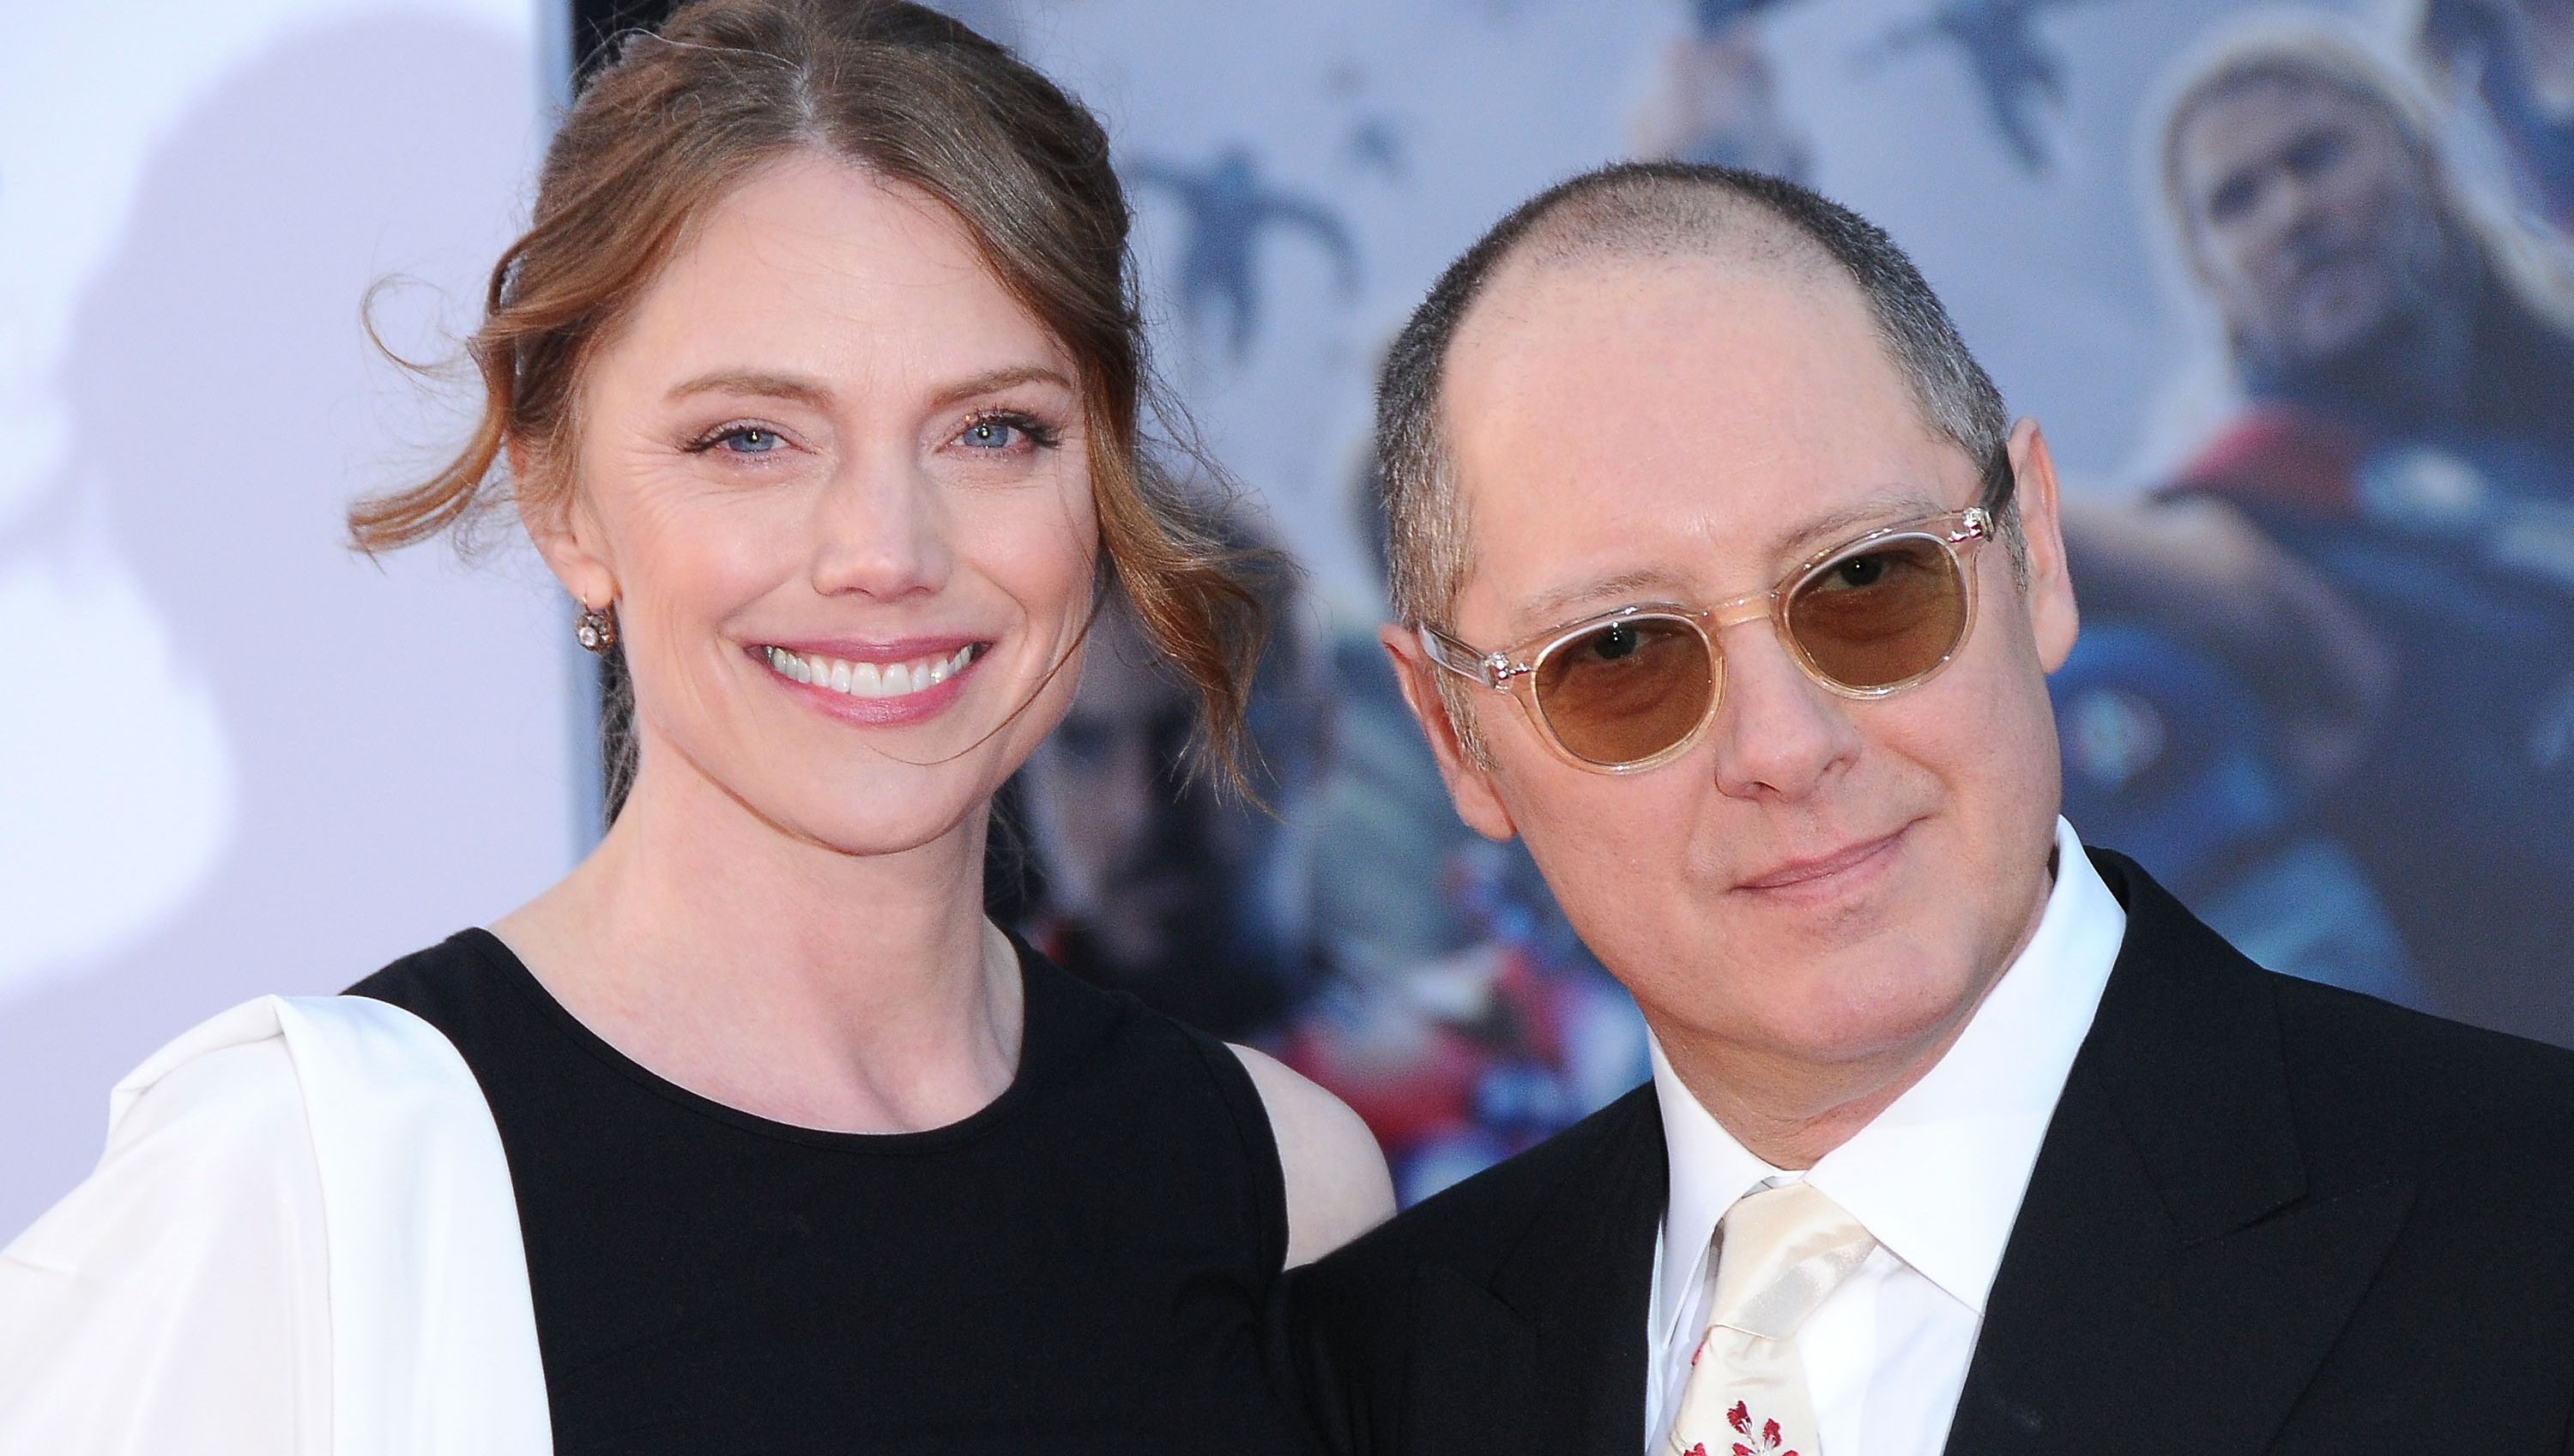 All About James Spader's Very Private Relationship With Leslie Stefanson